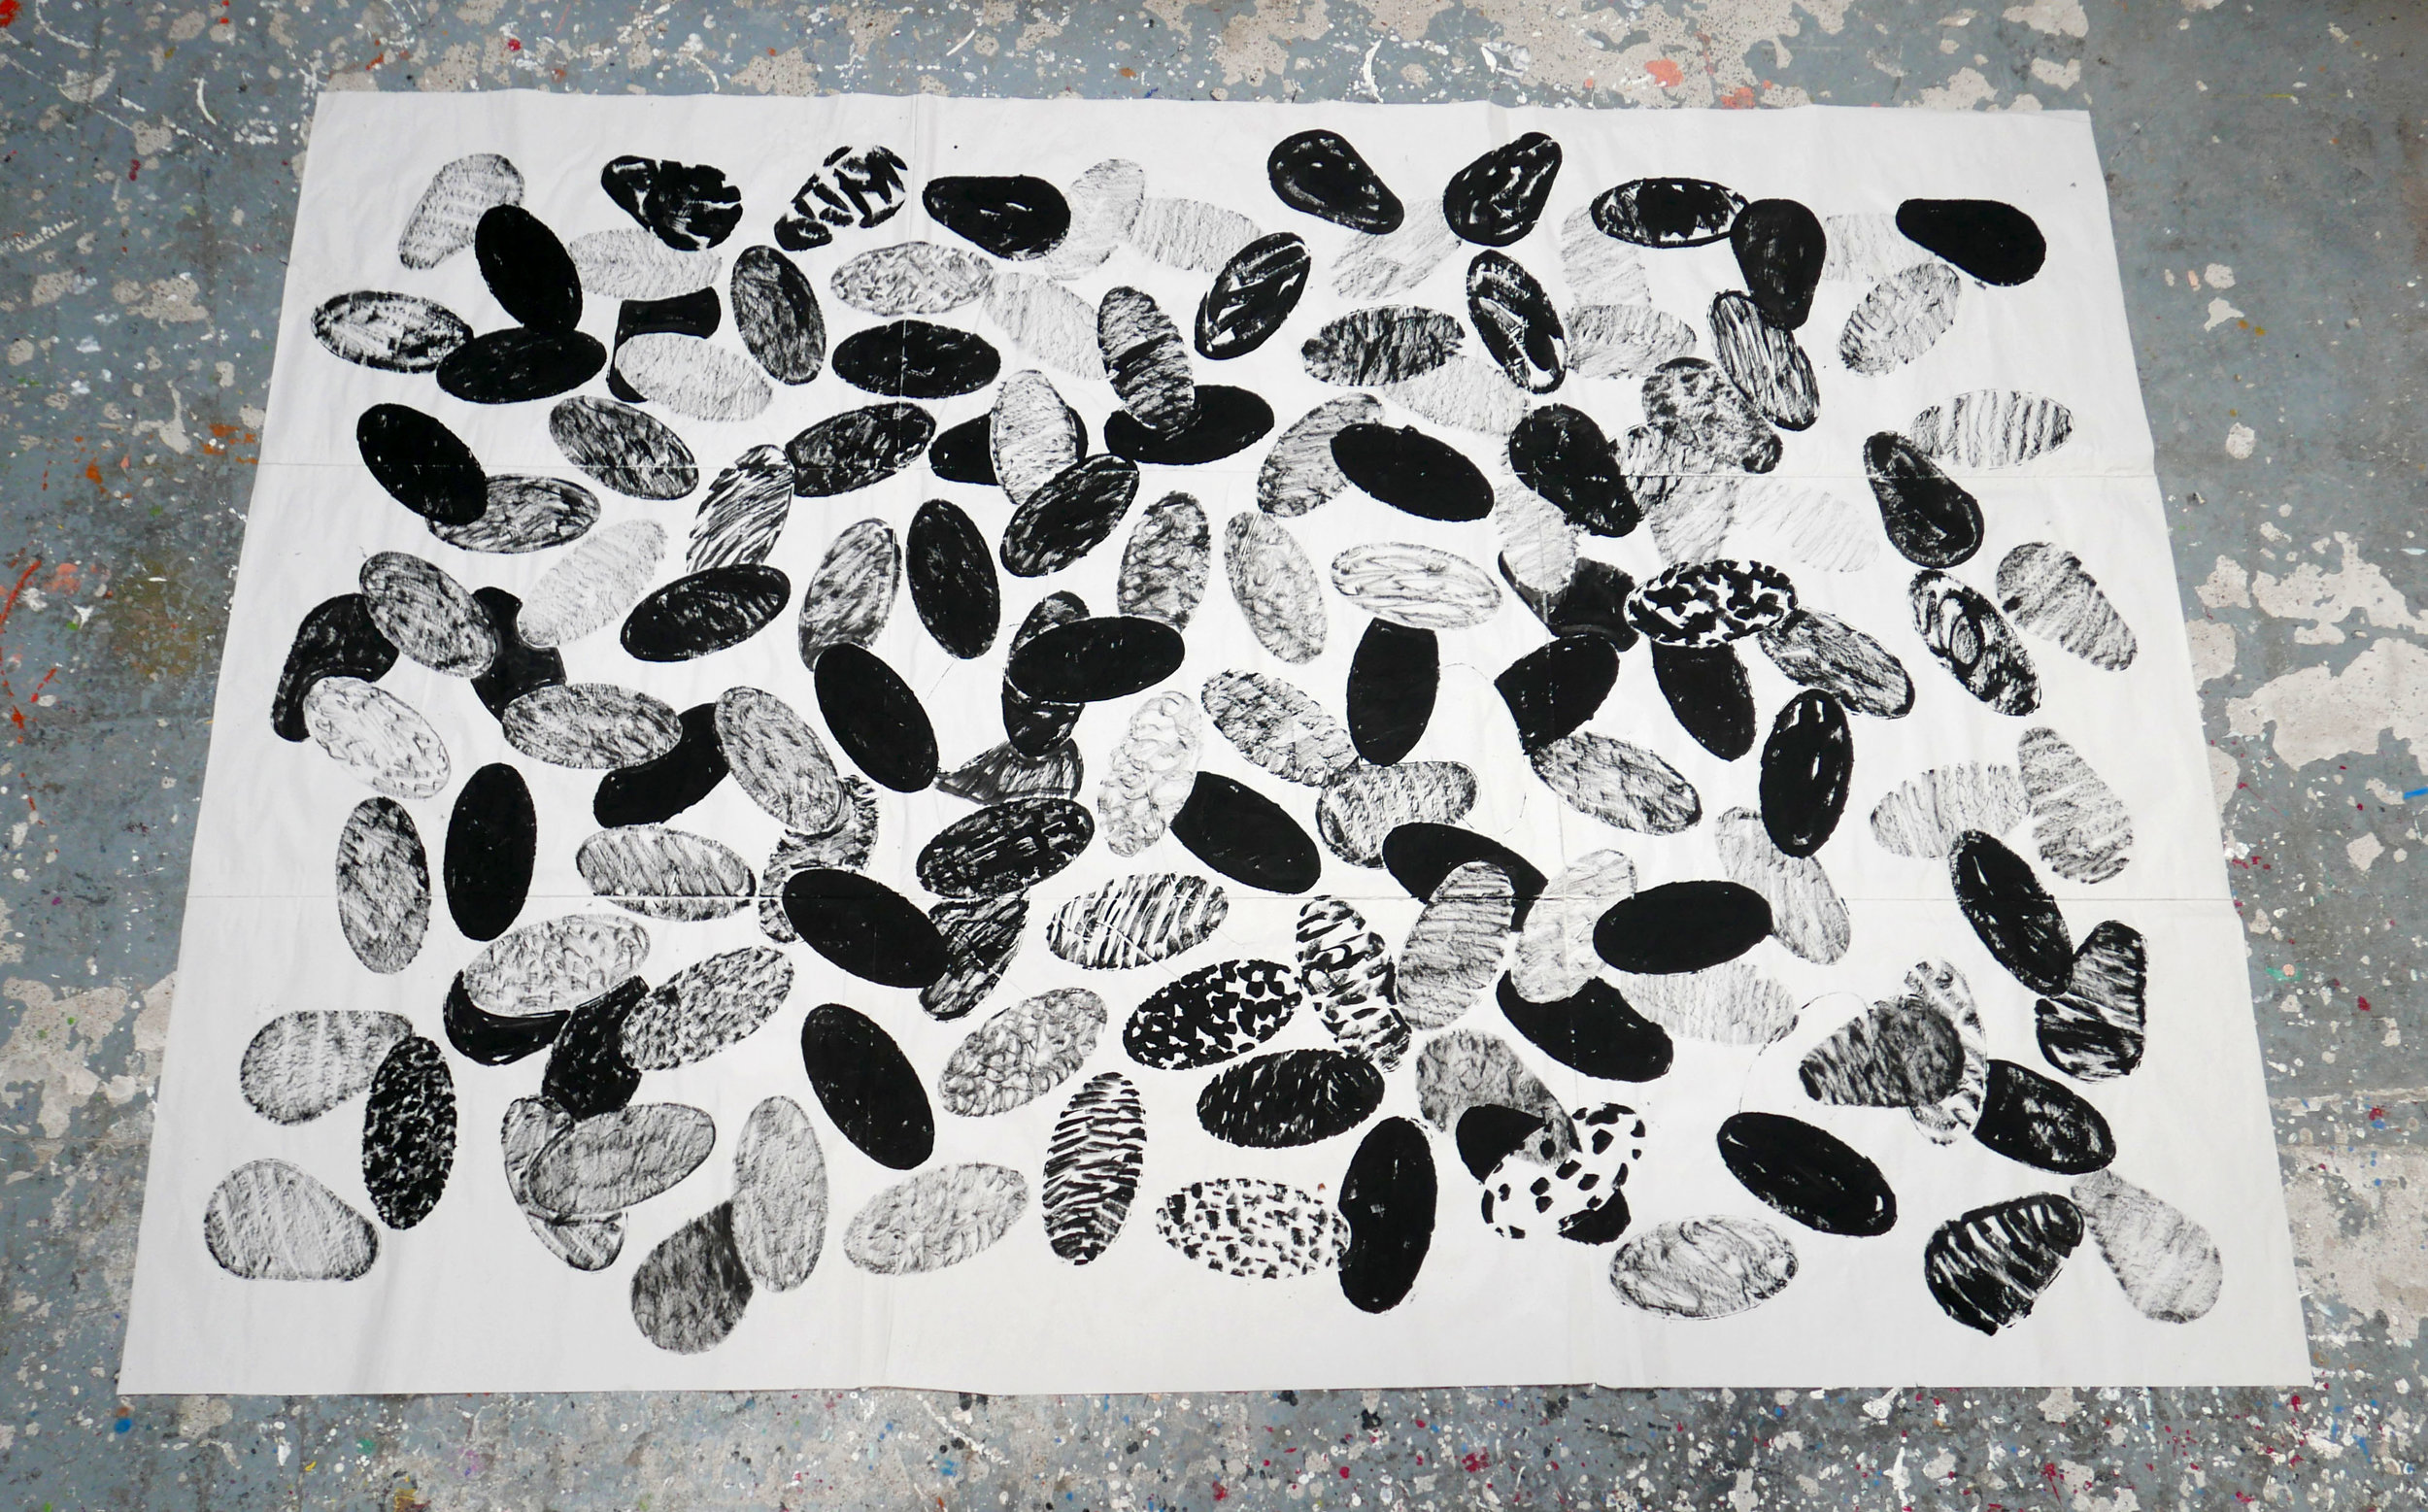 Large black drawing on newsprint with ovals (April May 2018) 008 - Copy.JPG